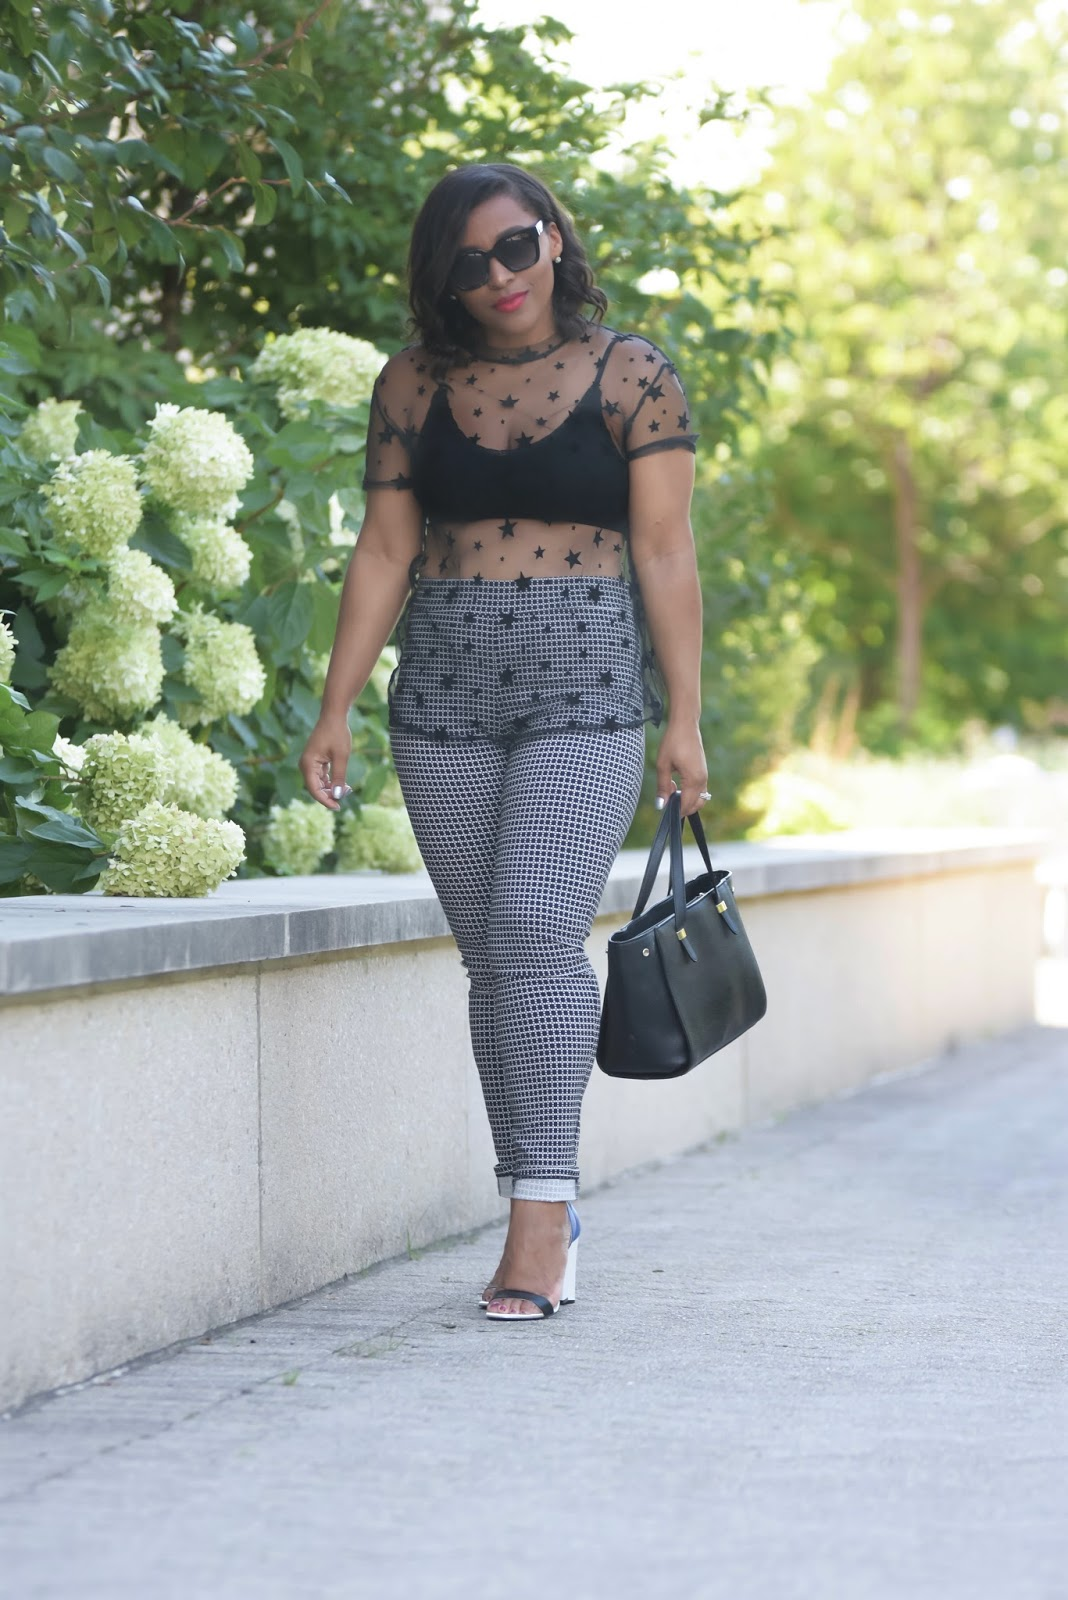 Mesh tops, star prints, armandhugon, dc bloggers, latina bloggers, fall looks, all black looks, fall outfit ideas, star printed tops, shoes of prey